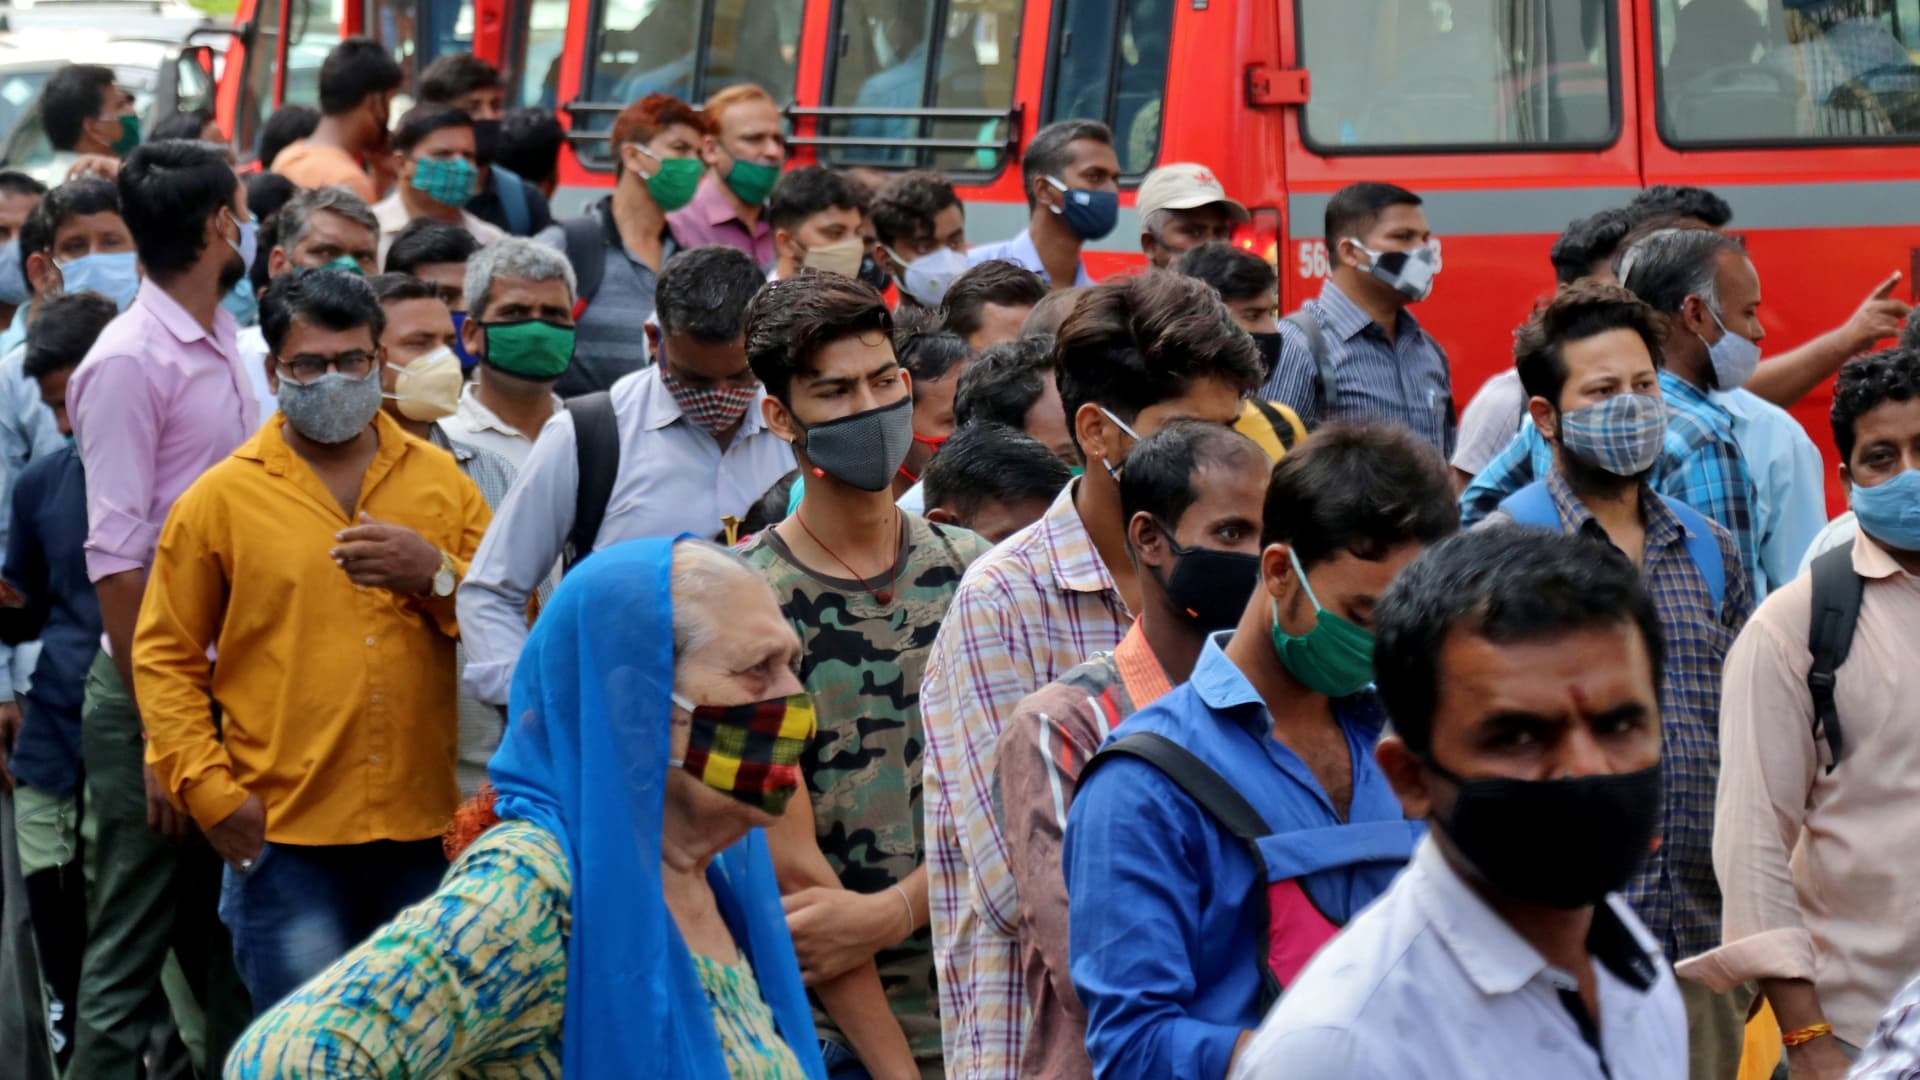 People wait to board passenger buses during rush hour at a bus terminal amidst the spread of the coronavirus disease (COVID-19), in Mumbai, India, April 5, 2021.